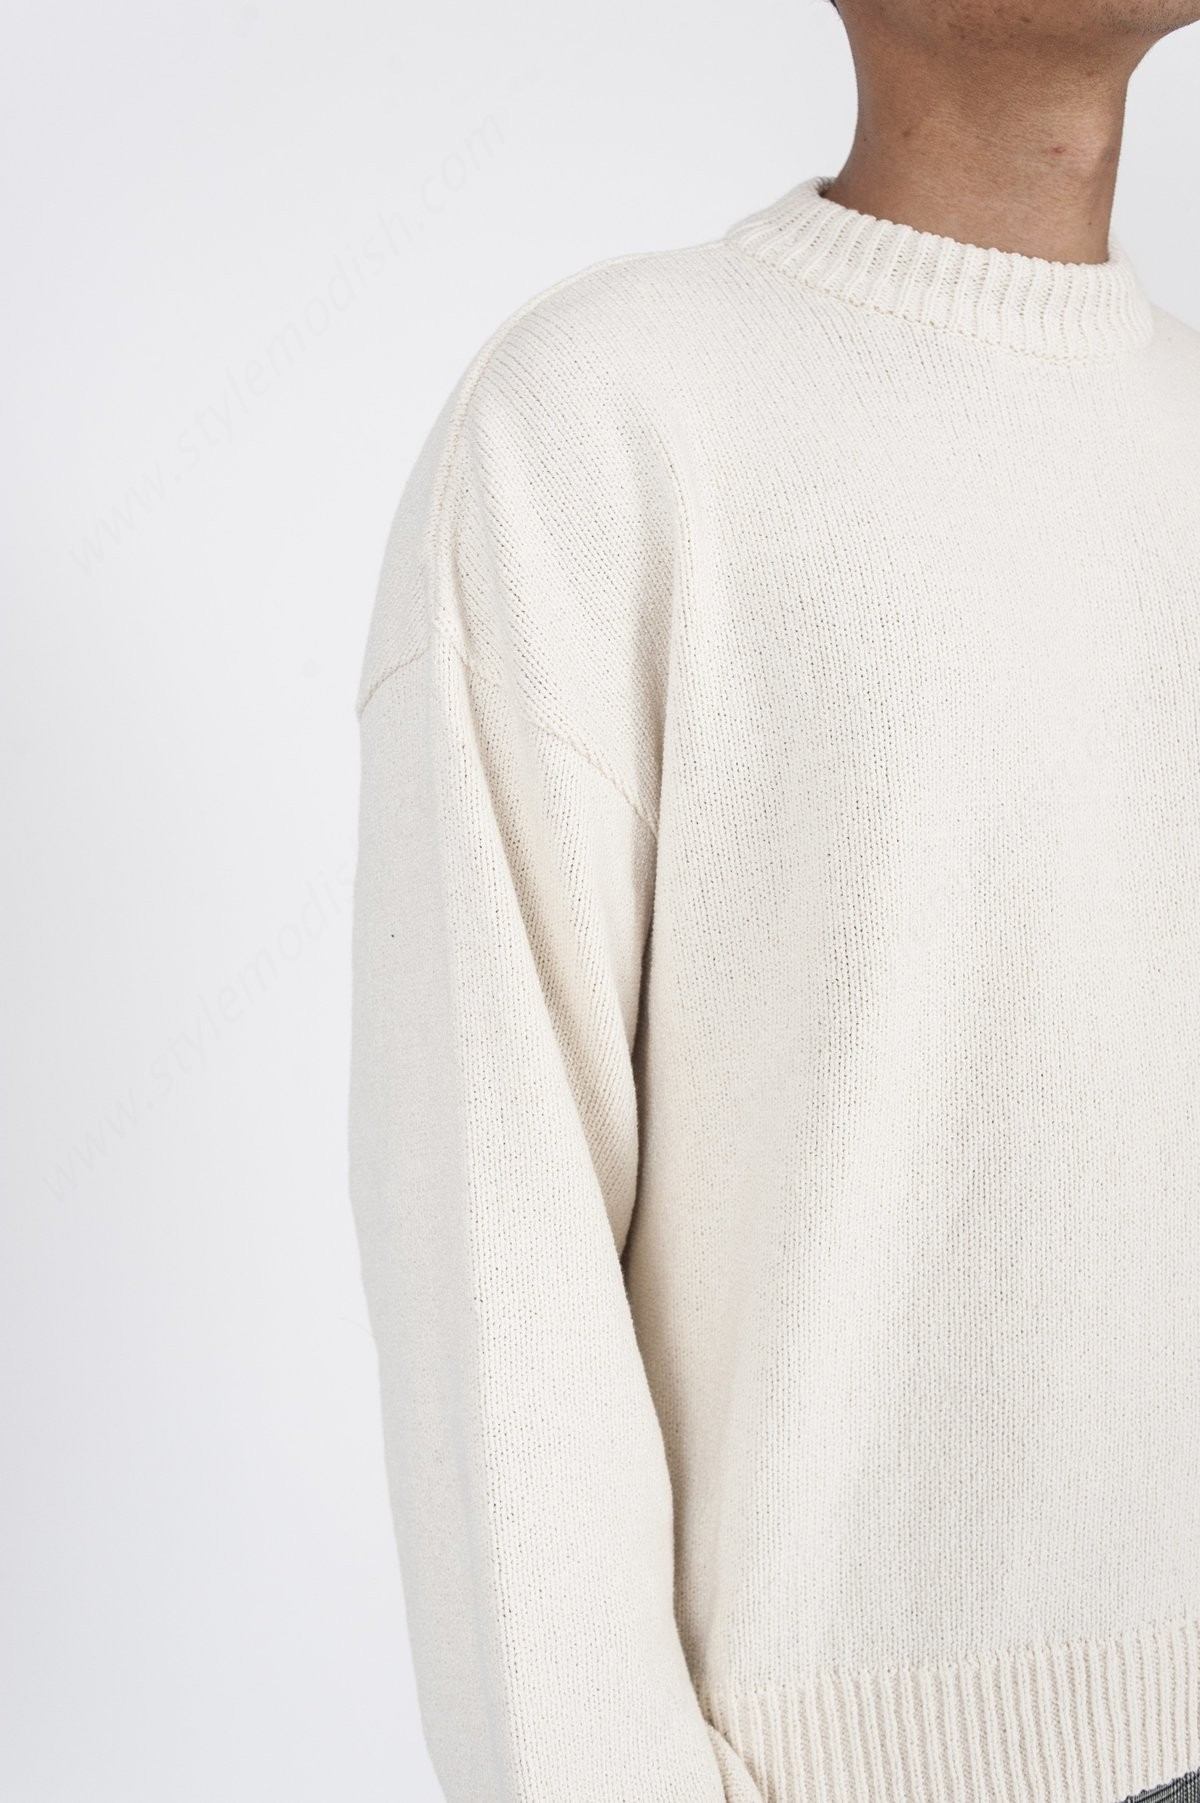 Mens's Our Legacy Sonar Roundneck Sweater - White - -3